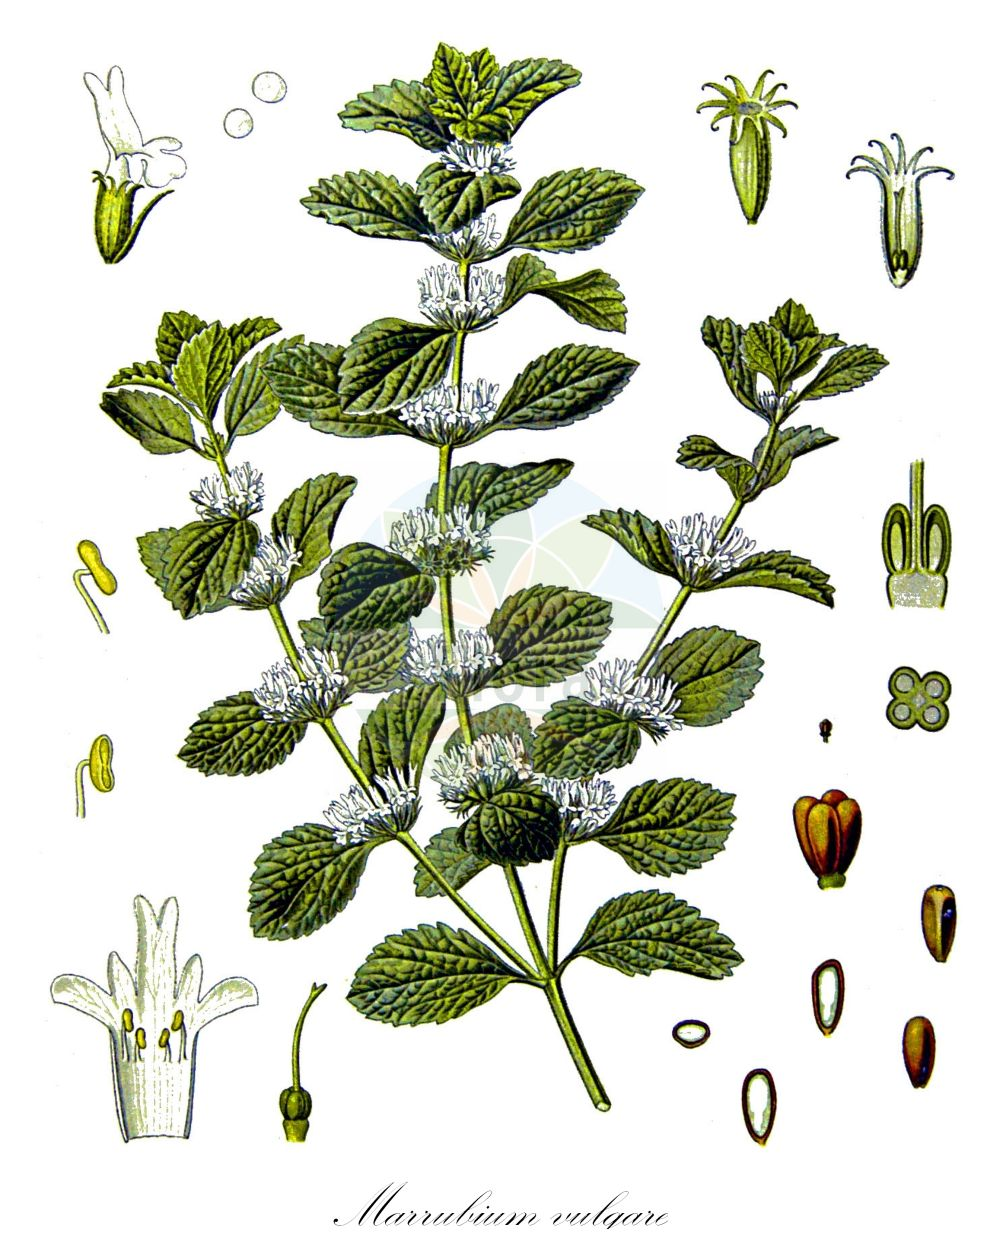 Historische Abbildung von Marrubium vulgare (Gewoehnlicher Andorn - White Horehound). Das Bild zeigt Blatt, Bluete, Frucht und Same. ---- Historical Drawing of Marrubium vulgare (Gewoehnlicher Andorn - White Horehound).The image is showing leaf, flower, fruit and seed.(Marrubium vulgare,Gewoehnlicher Andorn,White Horehound,Marrubium album,Marrubium apulum,Marrubium ballotoides,Marrubium germanicum,Marrubium hamatum,Prasium marrubium,Echter Andorn,Common Horehound,Horehound,Marrubium,Andorn,Horehound,Lamiaceae,Lippenbluetengewaechse;Lippenbluetler,Nettle family,Blatt,Bluete,Frucht,Same,leaf,flower,fruit,seed,Koehler (1883-1898))